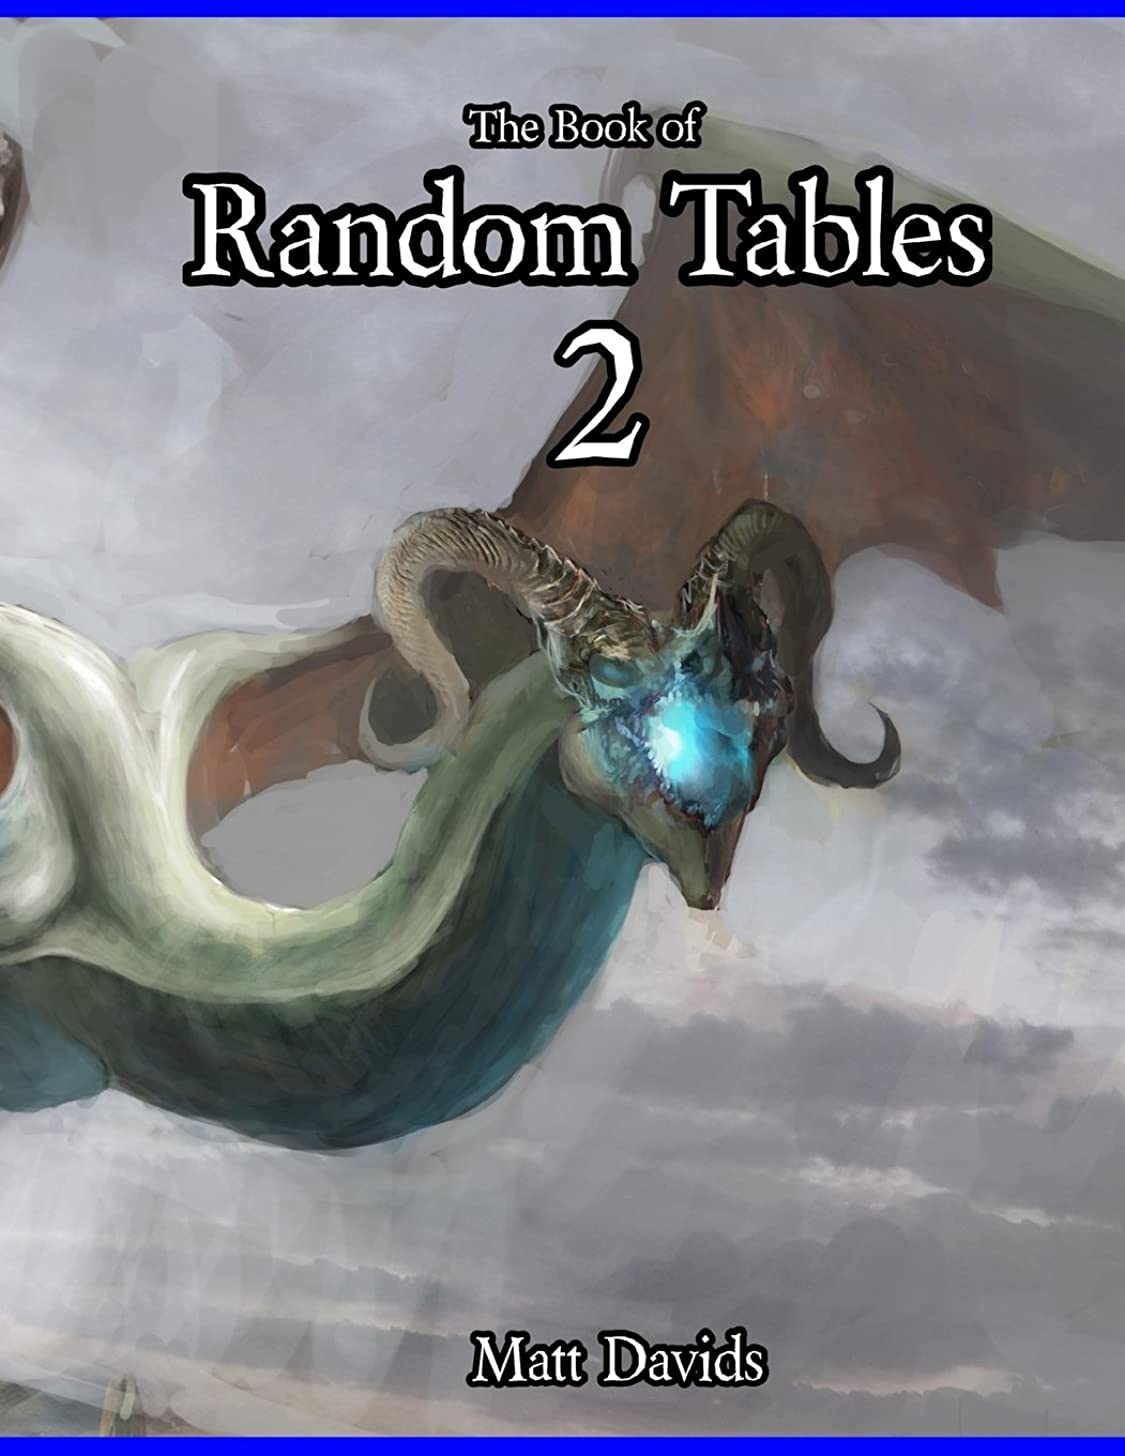 The Book of Random Tables 2: Fantasy Role-Playing Game Aids for Game Masters (Fantasy RPG Random Tables) (Volume 2)